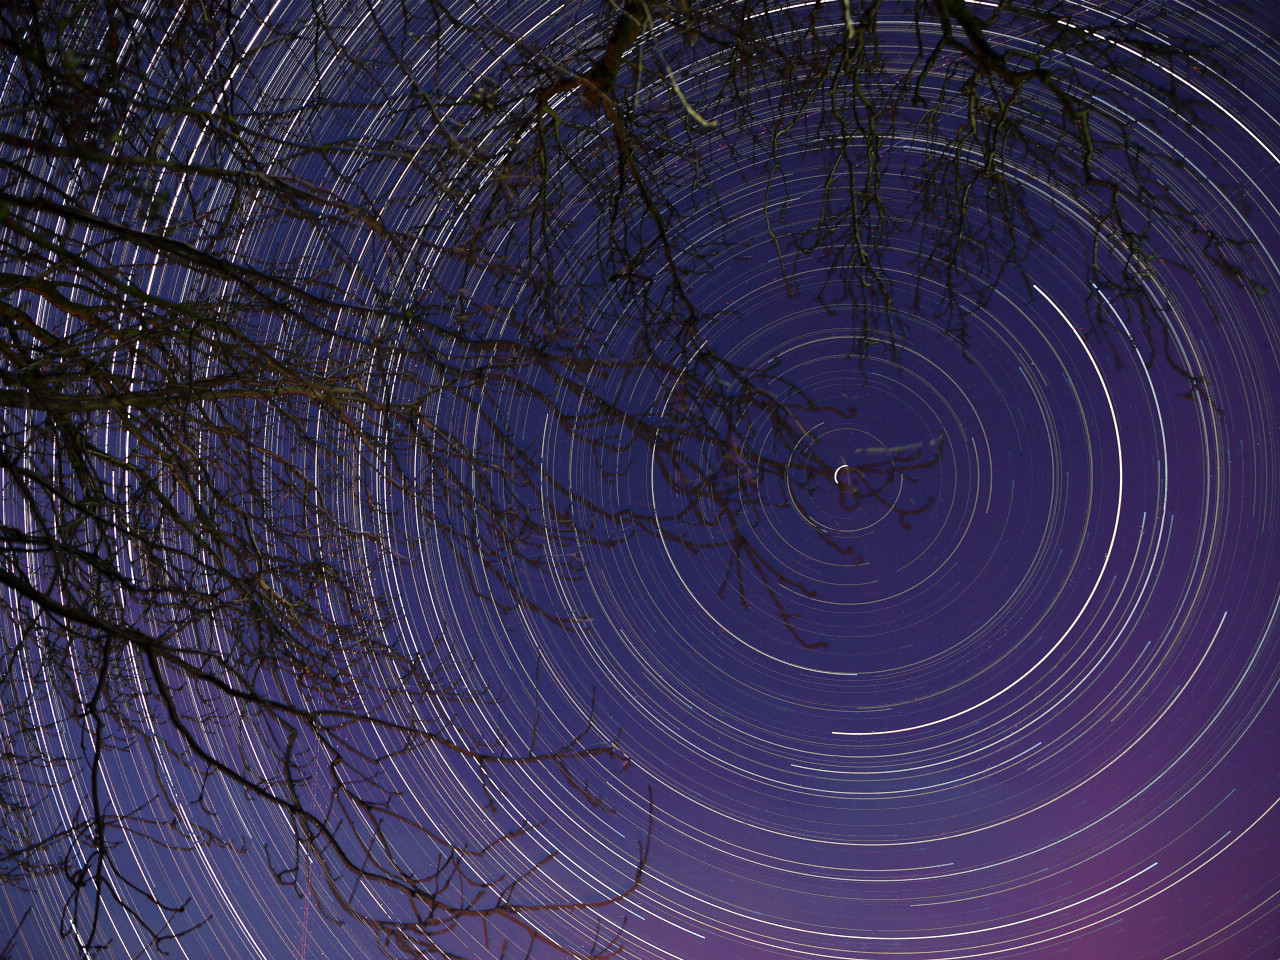 My second star trail shot with the Olympus E5. 25 Nov 2010. The only good thing about the unprecedented cold snap currently gripping the UK is the clear sky opportunities :-) For this shot I used the 12-60mm SWD lens and  mounted the E5 on a tripod underneath a clump of trees at the bottom of my field and composed around Polaris (around which the trail spins). IS0 set to 400 opened the aperture as wide as it went (F2.8) and shot 15s exposures continuously all night from approx 7pm to 7am the next morning. Noise reduction was switched OFF. Camera was powered via external using extension lead from garage. To prevent the camera and lens from dewing and freezing over my home made dew shield was used. The following morning I retrieved the camera from a frozen field where temps dropped to -5C. After downloading the 2500 images and running through stacking software the final composite, that you see, was produced.  The image was imported into Aperture with a tiny levels adjustment and removal of some annoying plane light trails. NO noise reduction filter was applied and reduced from the original JPEG size to this one you see with No sharpening.